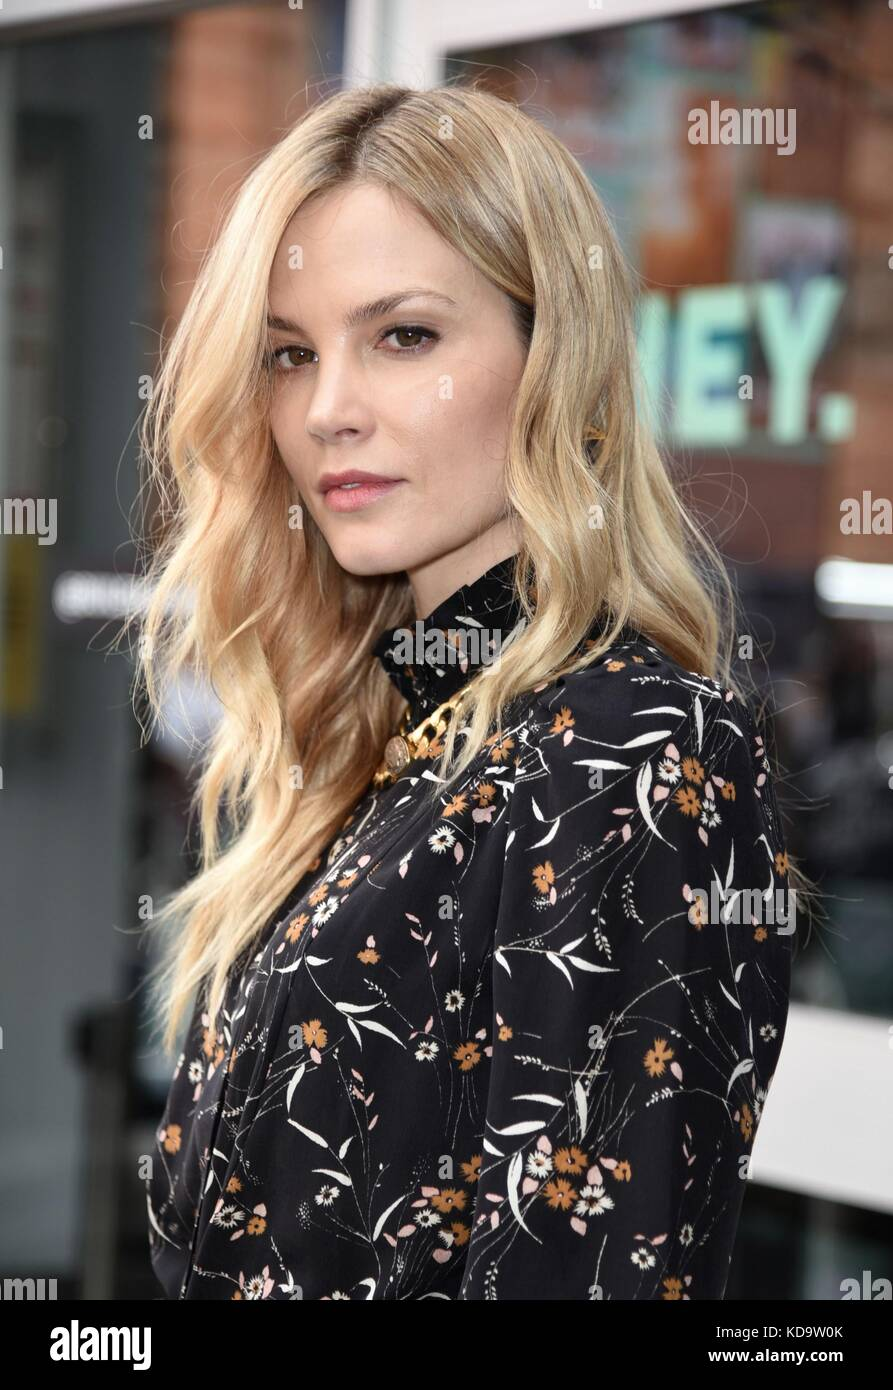 New York, NY, USA. 11th Oct, 2017. Sylvia Hoeks, seen at AOL BUILD to promote her film BLADE RUNNER 2049 out and - Stock Image